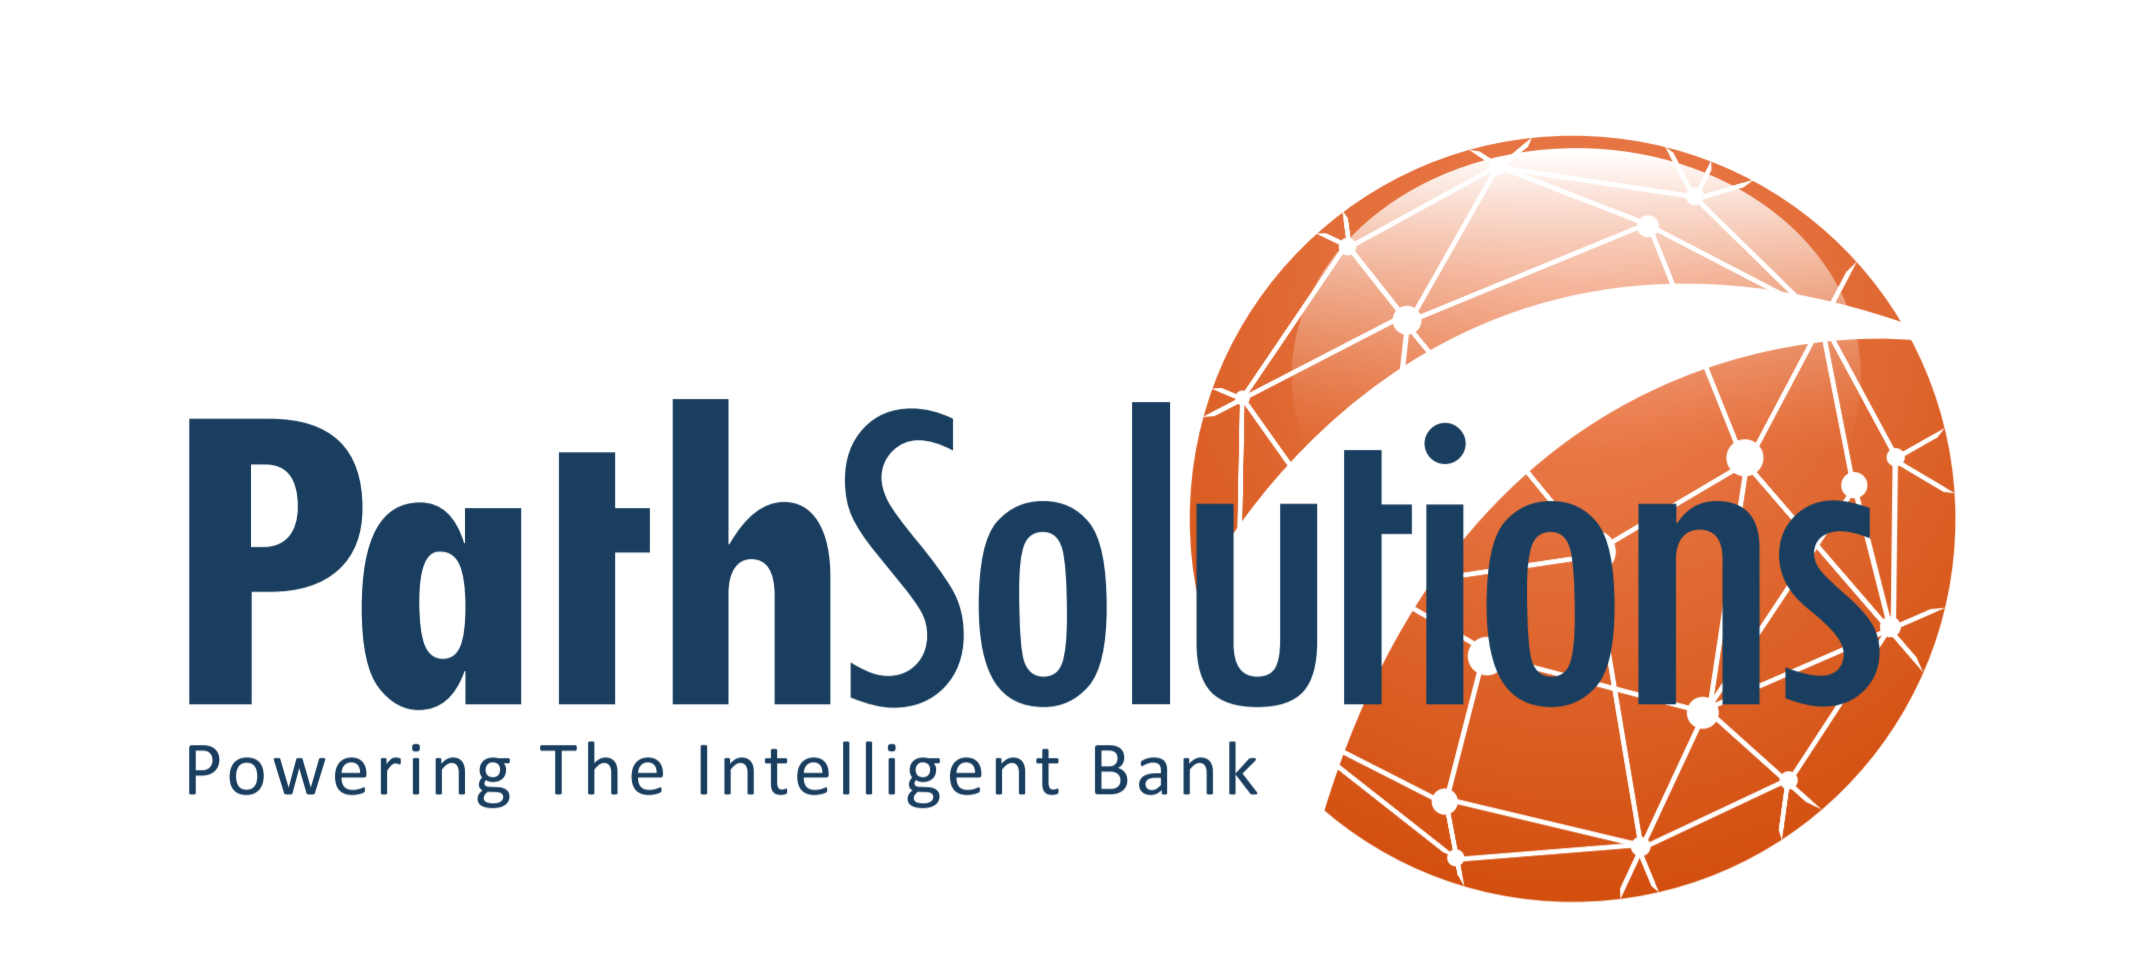 New Islamic core banking software deal for Path Solutions in Morocco